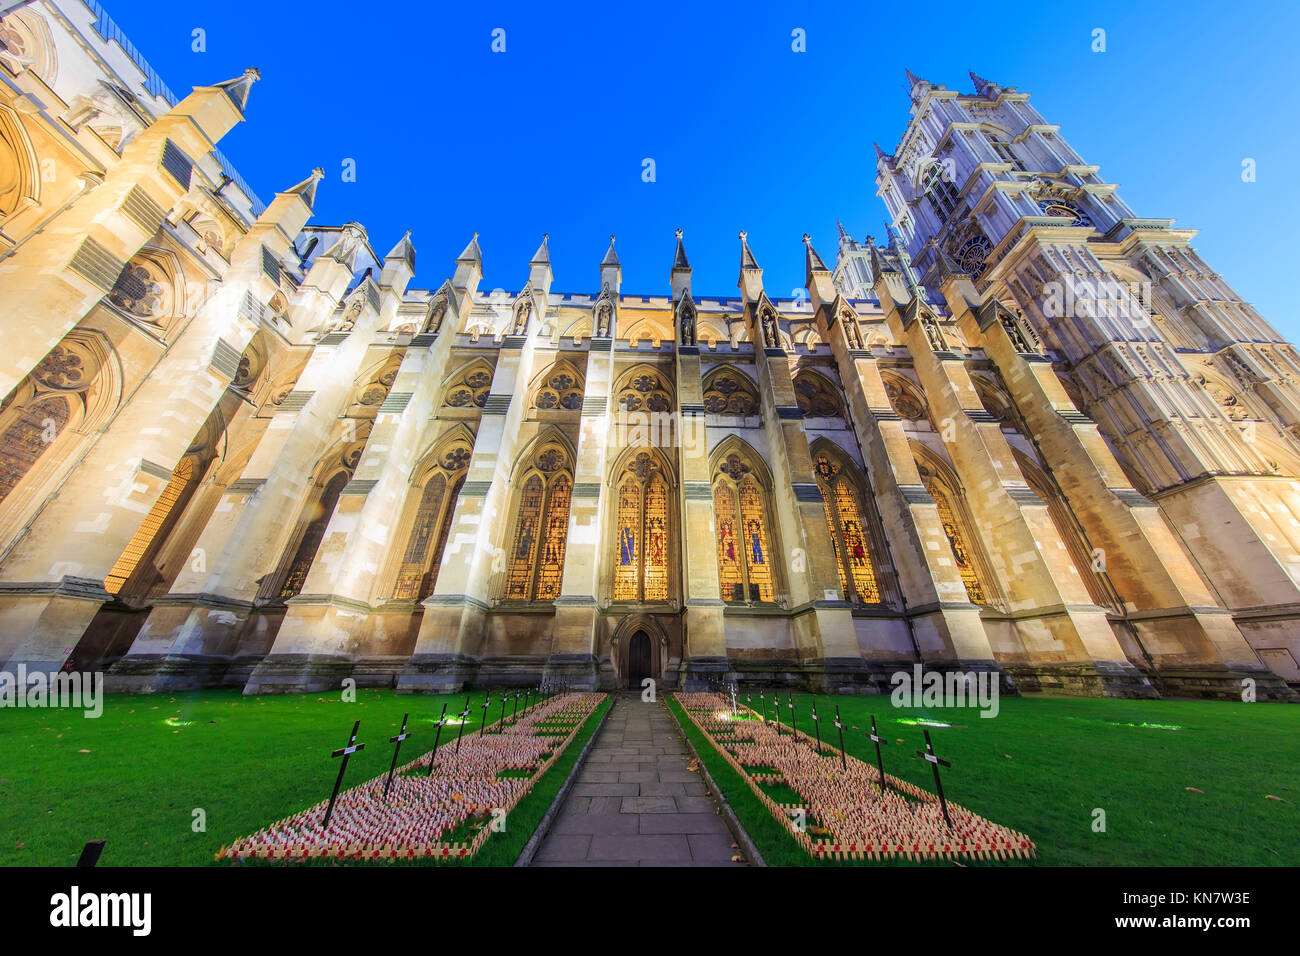 London, NOV 13: Night view of the AWestminster Abbey with Veteran's day on NOV 13, 2015 at London, United Kingdom Stock Photo